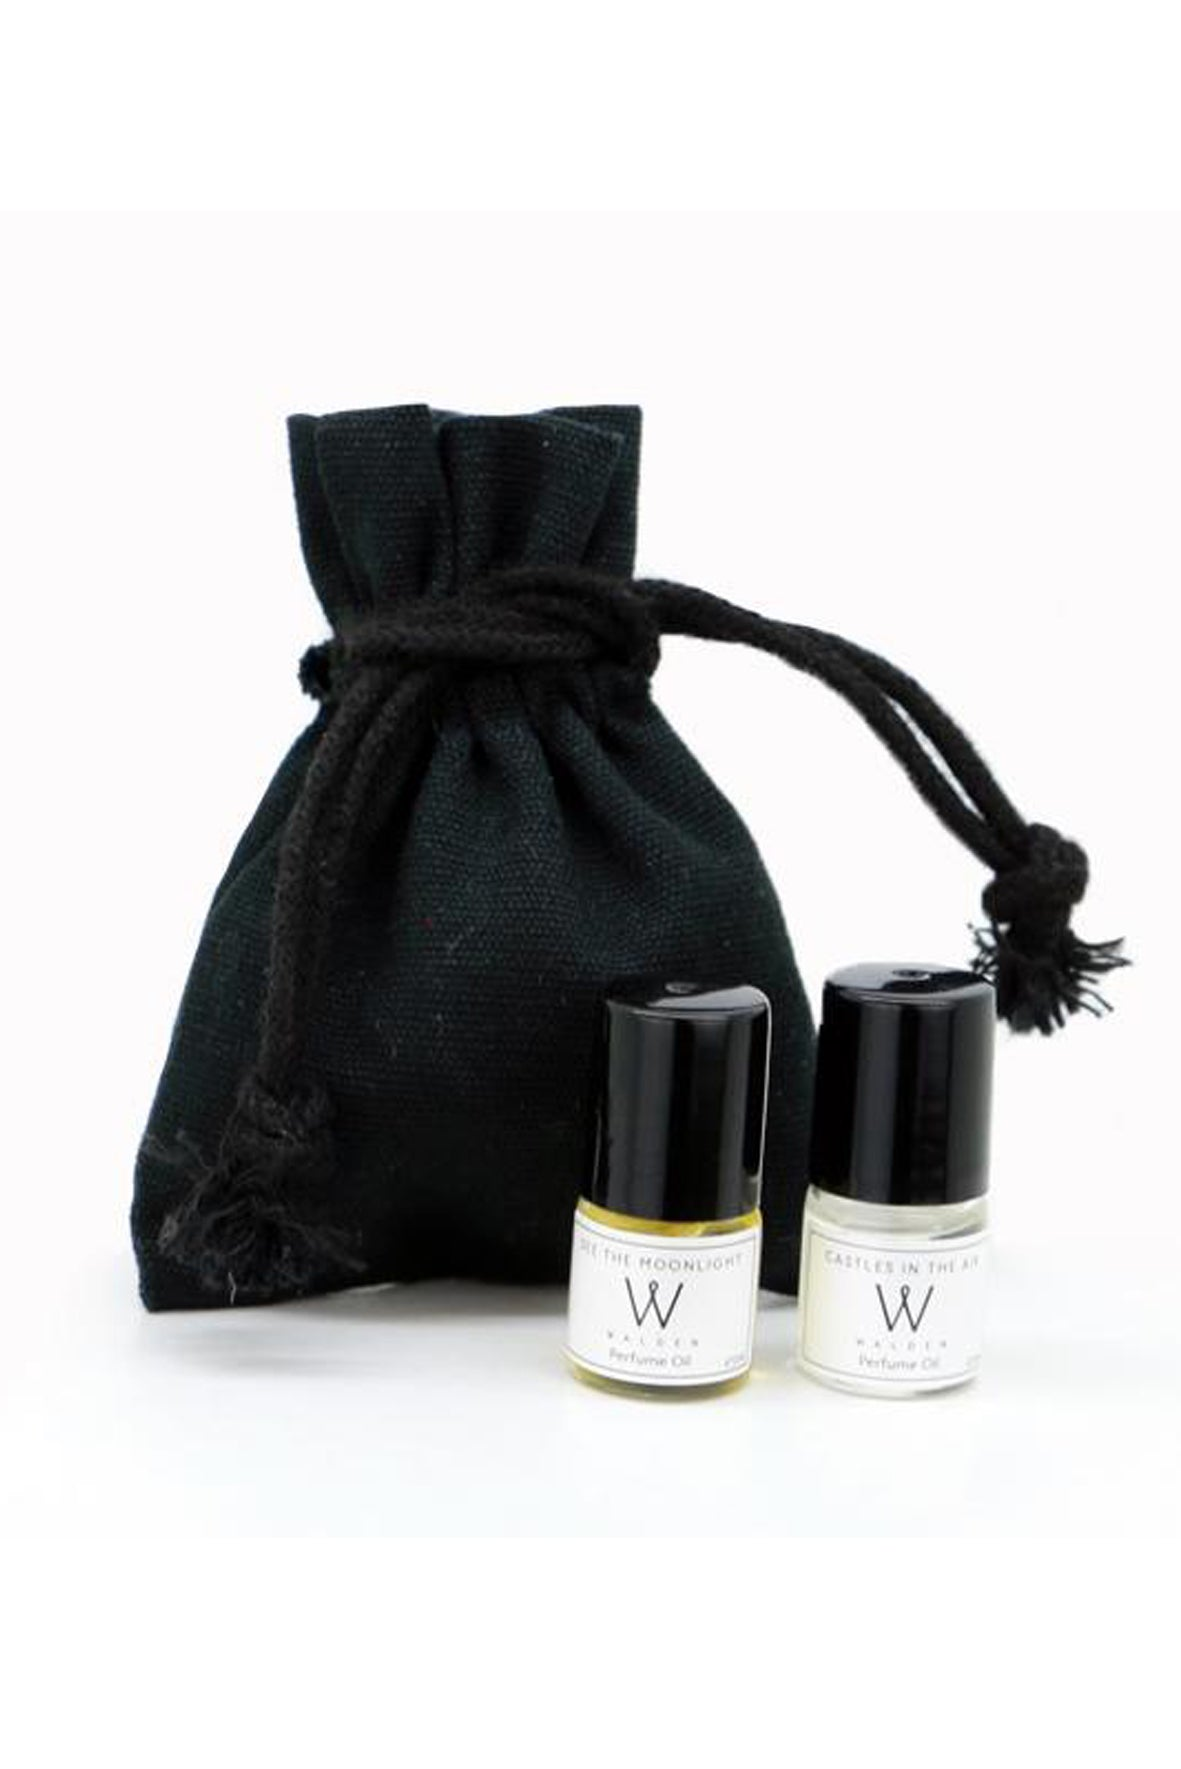 Walden's Rollerball Samples | Beauty | Walden Perfumes | [product_tag] - Fair Bazaar Ethical Living